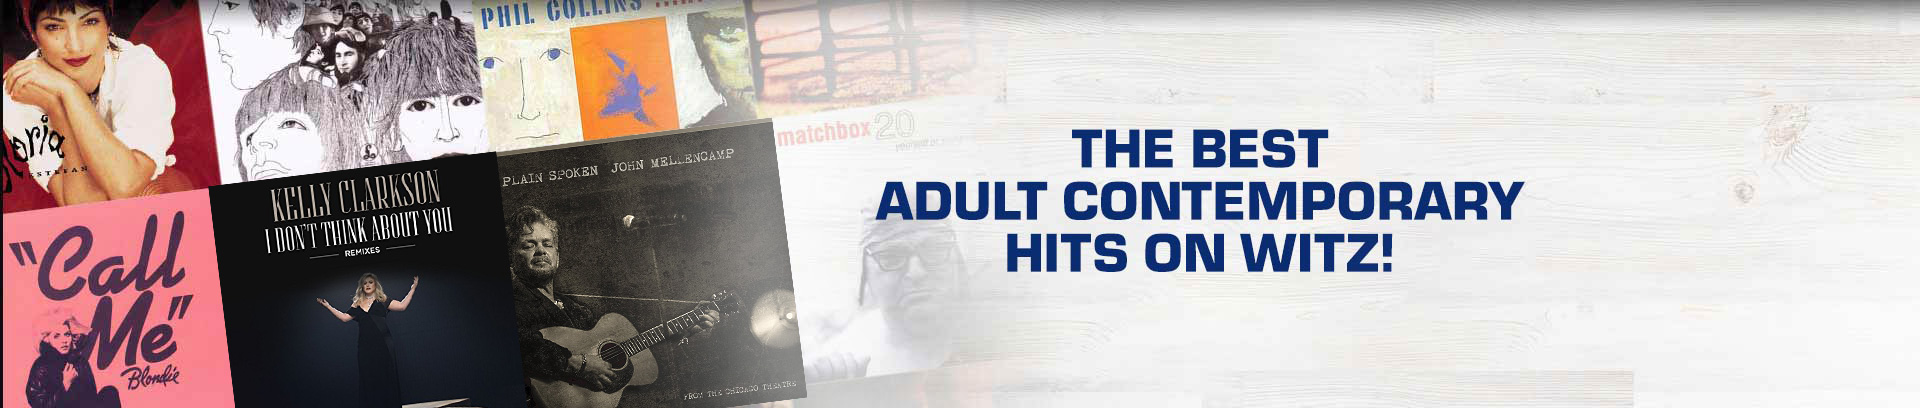 The Best Adult Contemporary Hits On Witz!